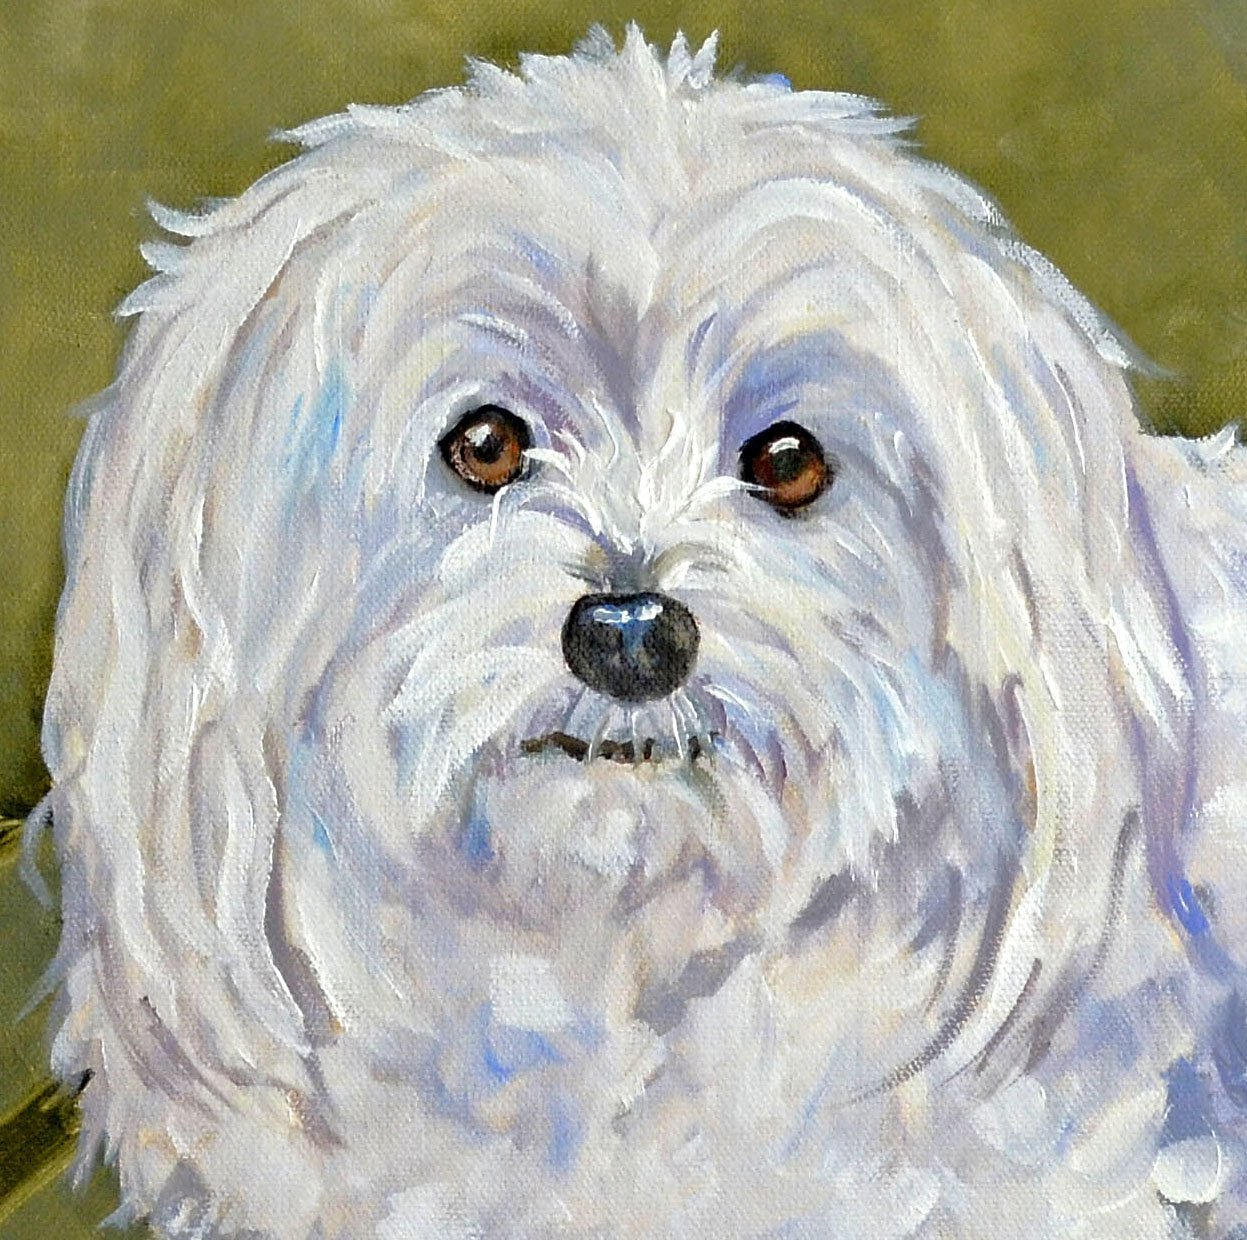 Custom Dog Portrait Oil Painting Painted by me, Artist Robin Zebley